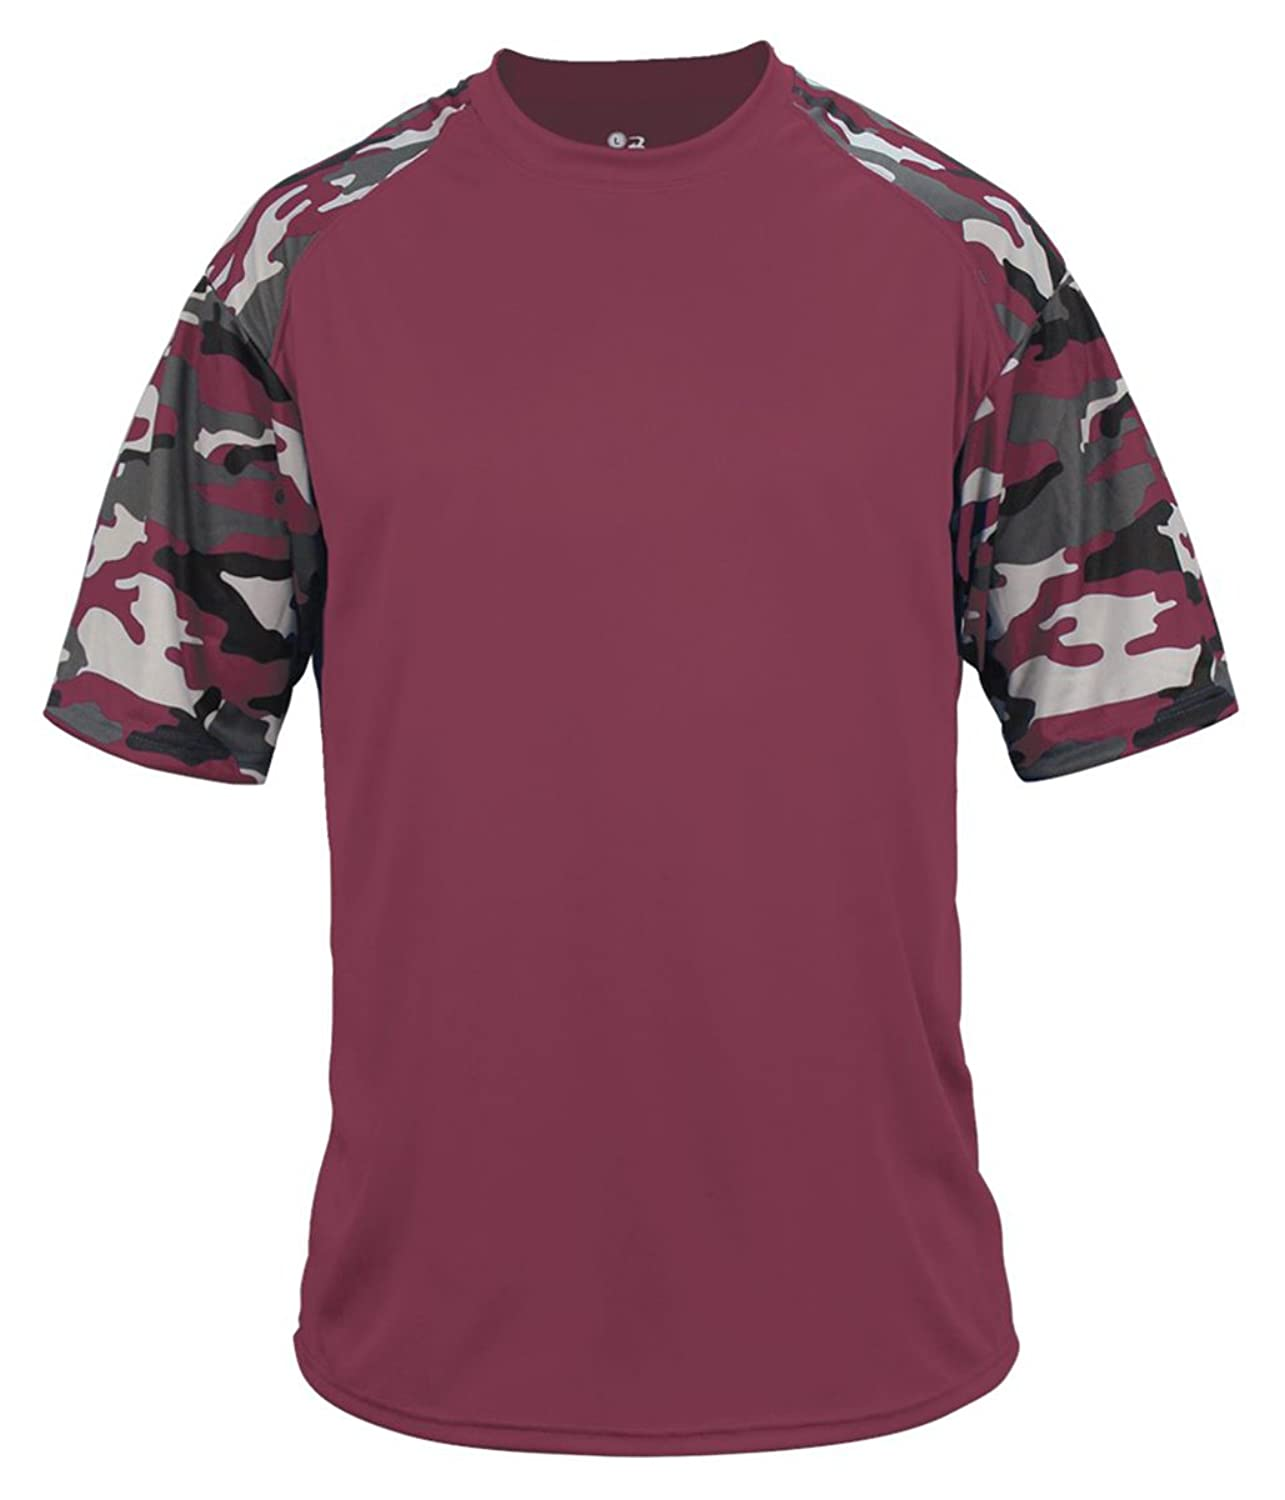 Badger Performance Sublimated Camo Sport T-Shirt